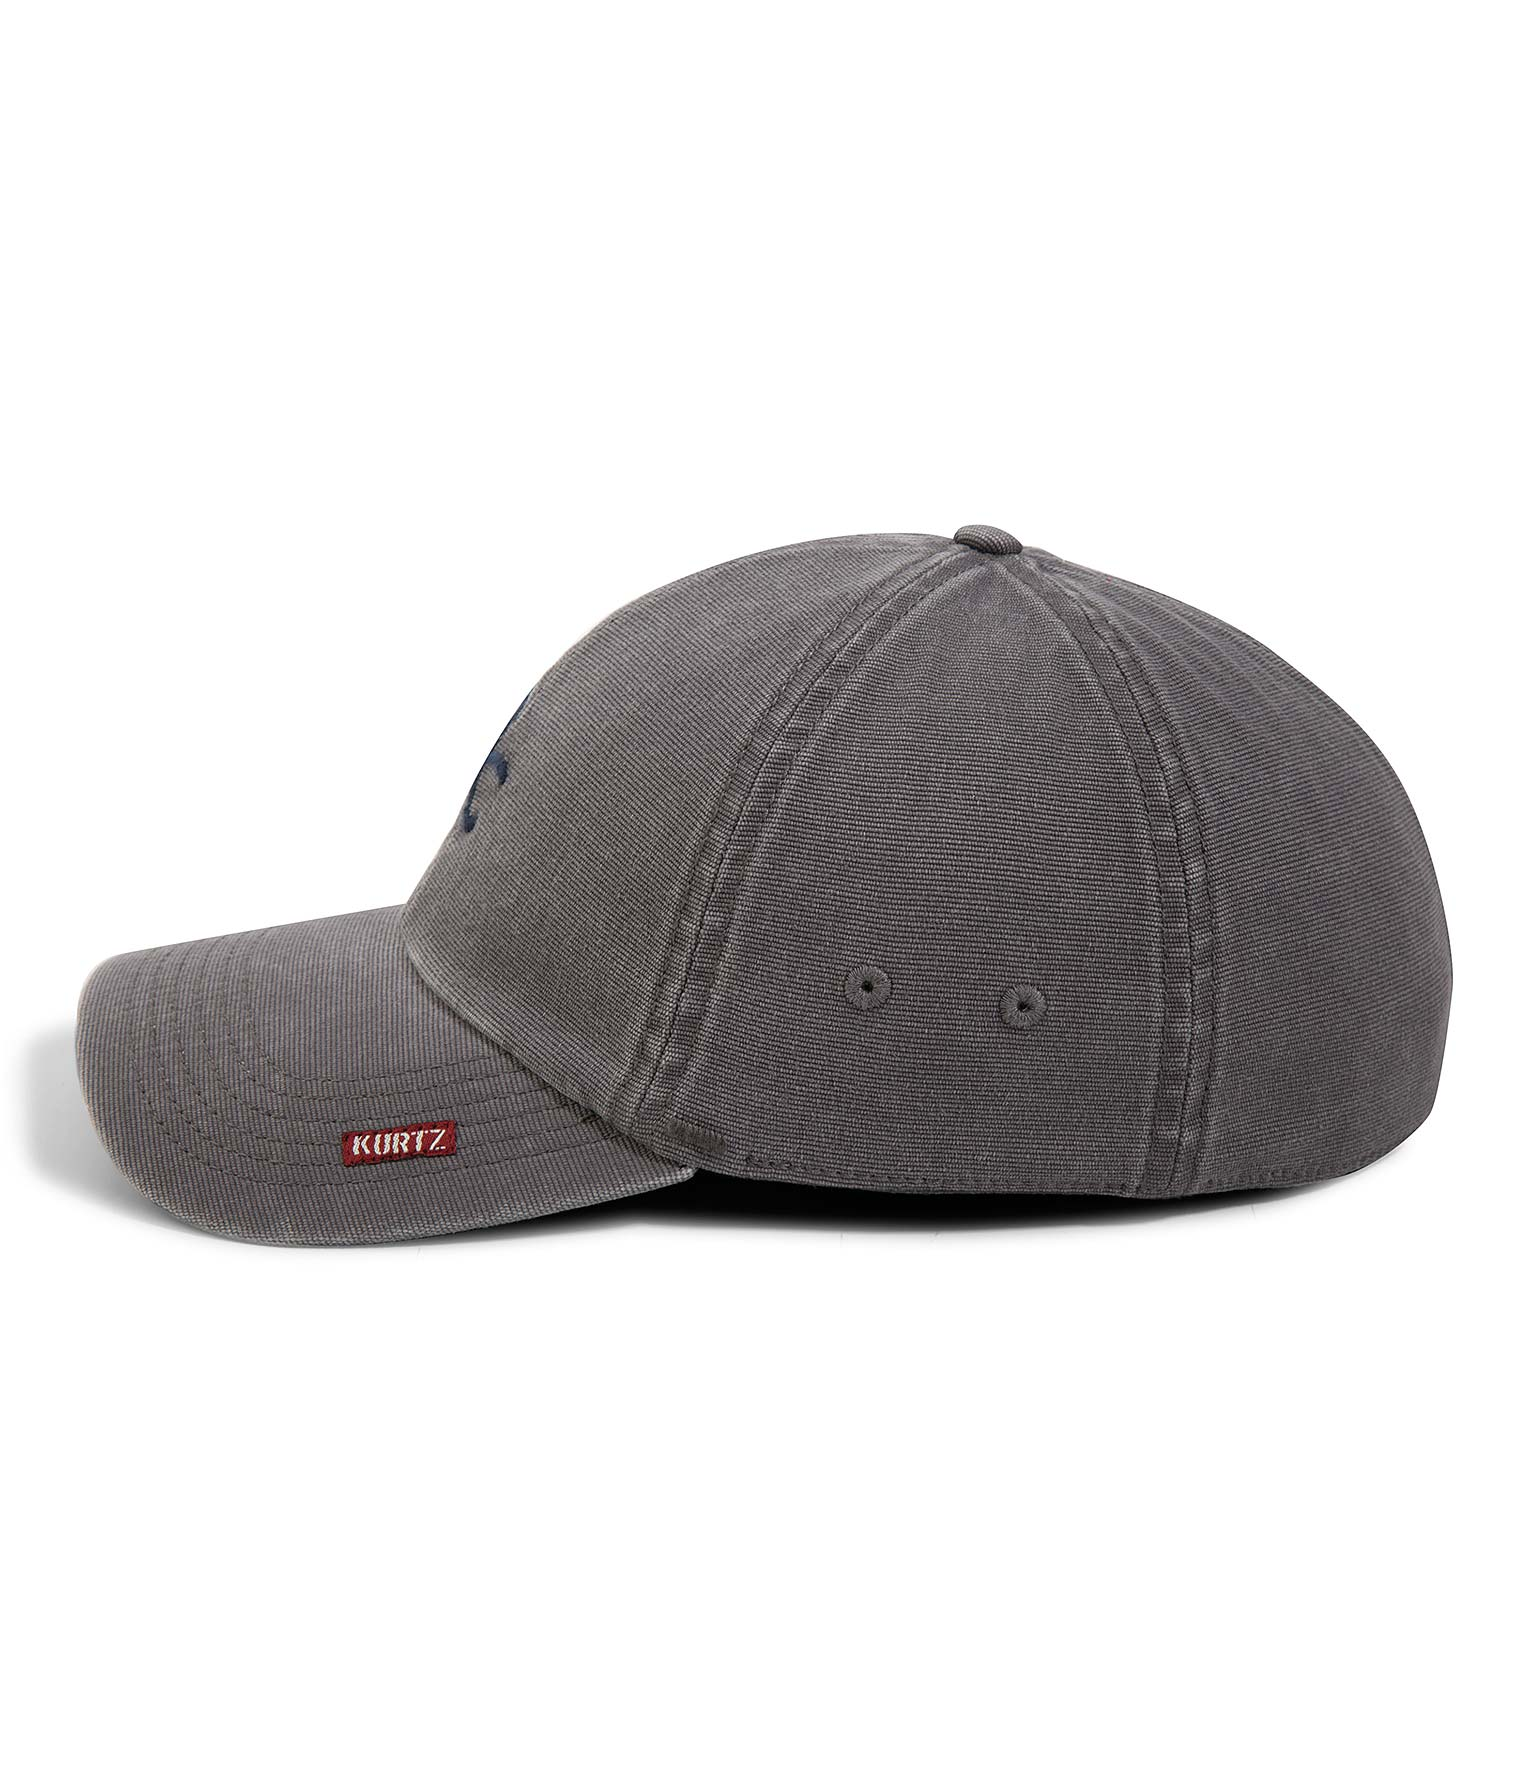 A-league Flex Baseball Cap